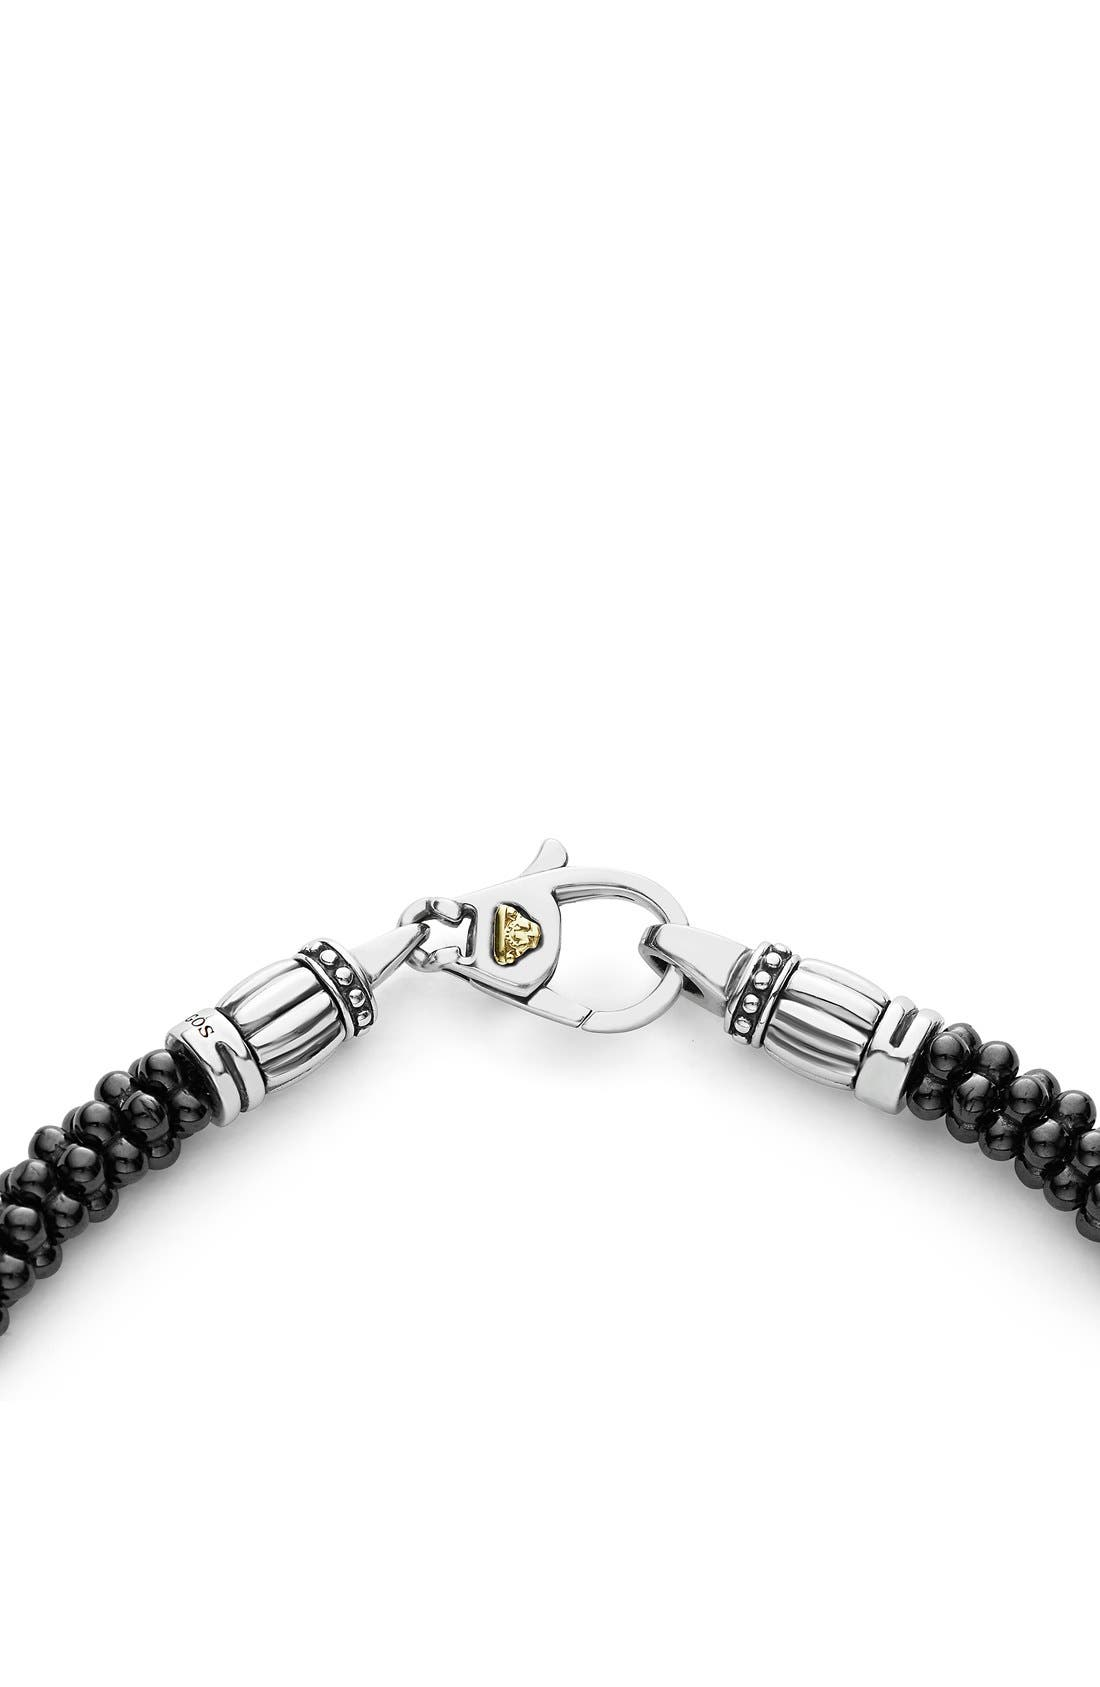 'Caviar Gold' Bracelet,                             Alternate thumbnail 4, color,                             BLACK/ GOLD